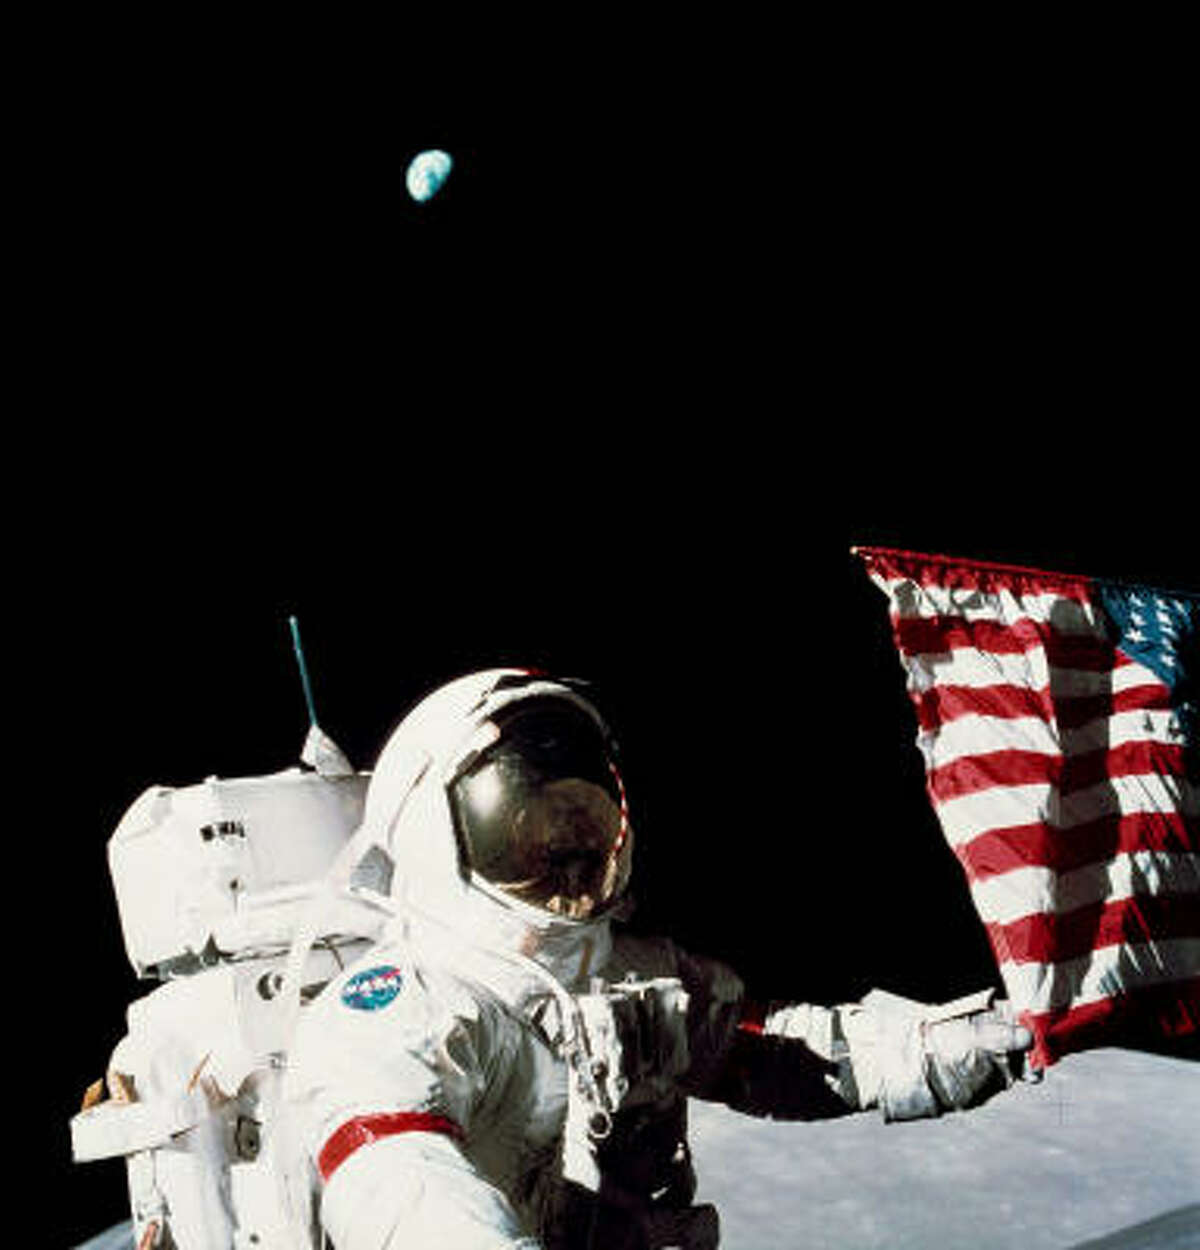 Astronaut Gene Cernan was a member of Apollo 17 in 1972. He is shown here, with the Earth rising in the background, holding an American flag.